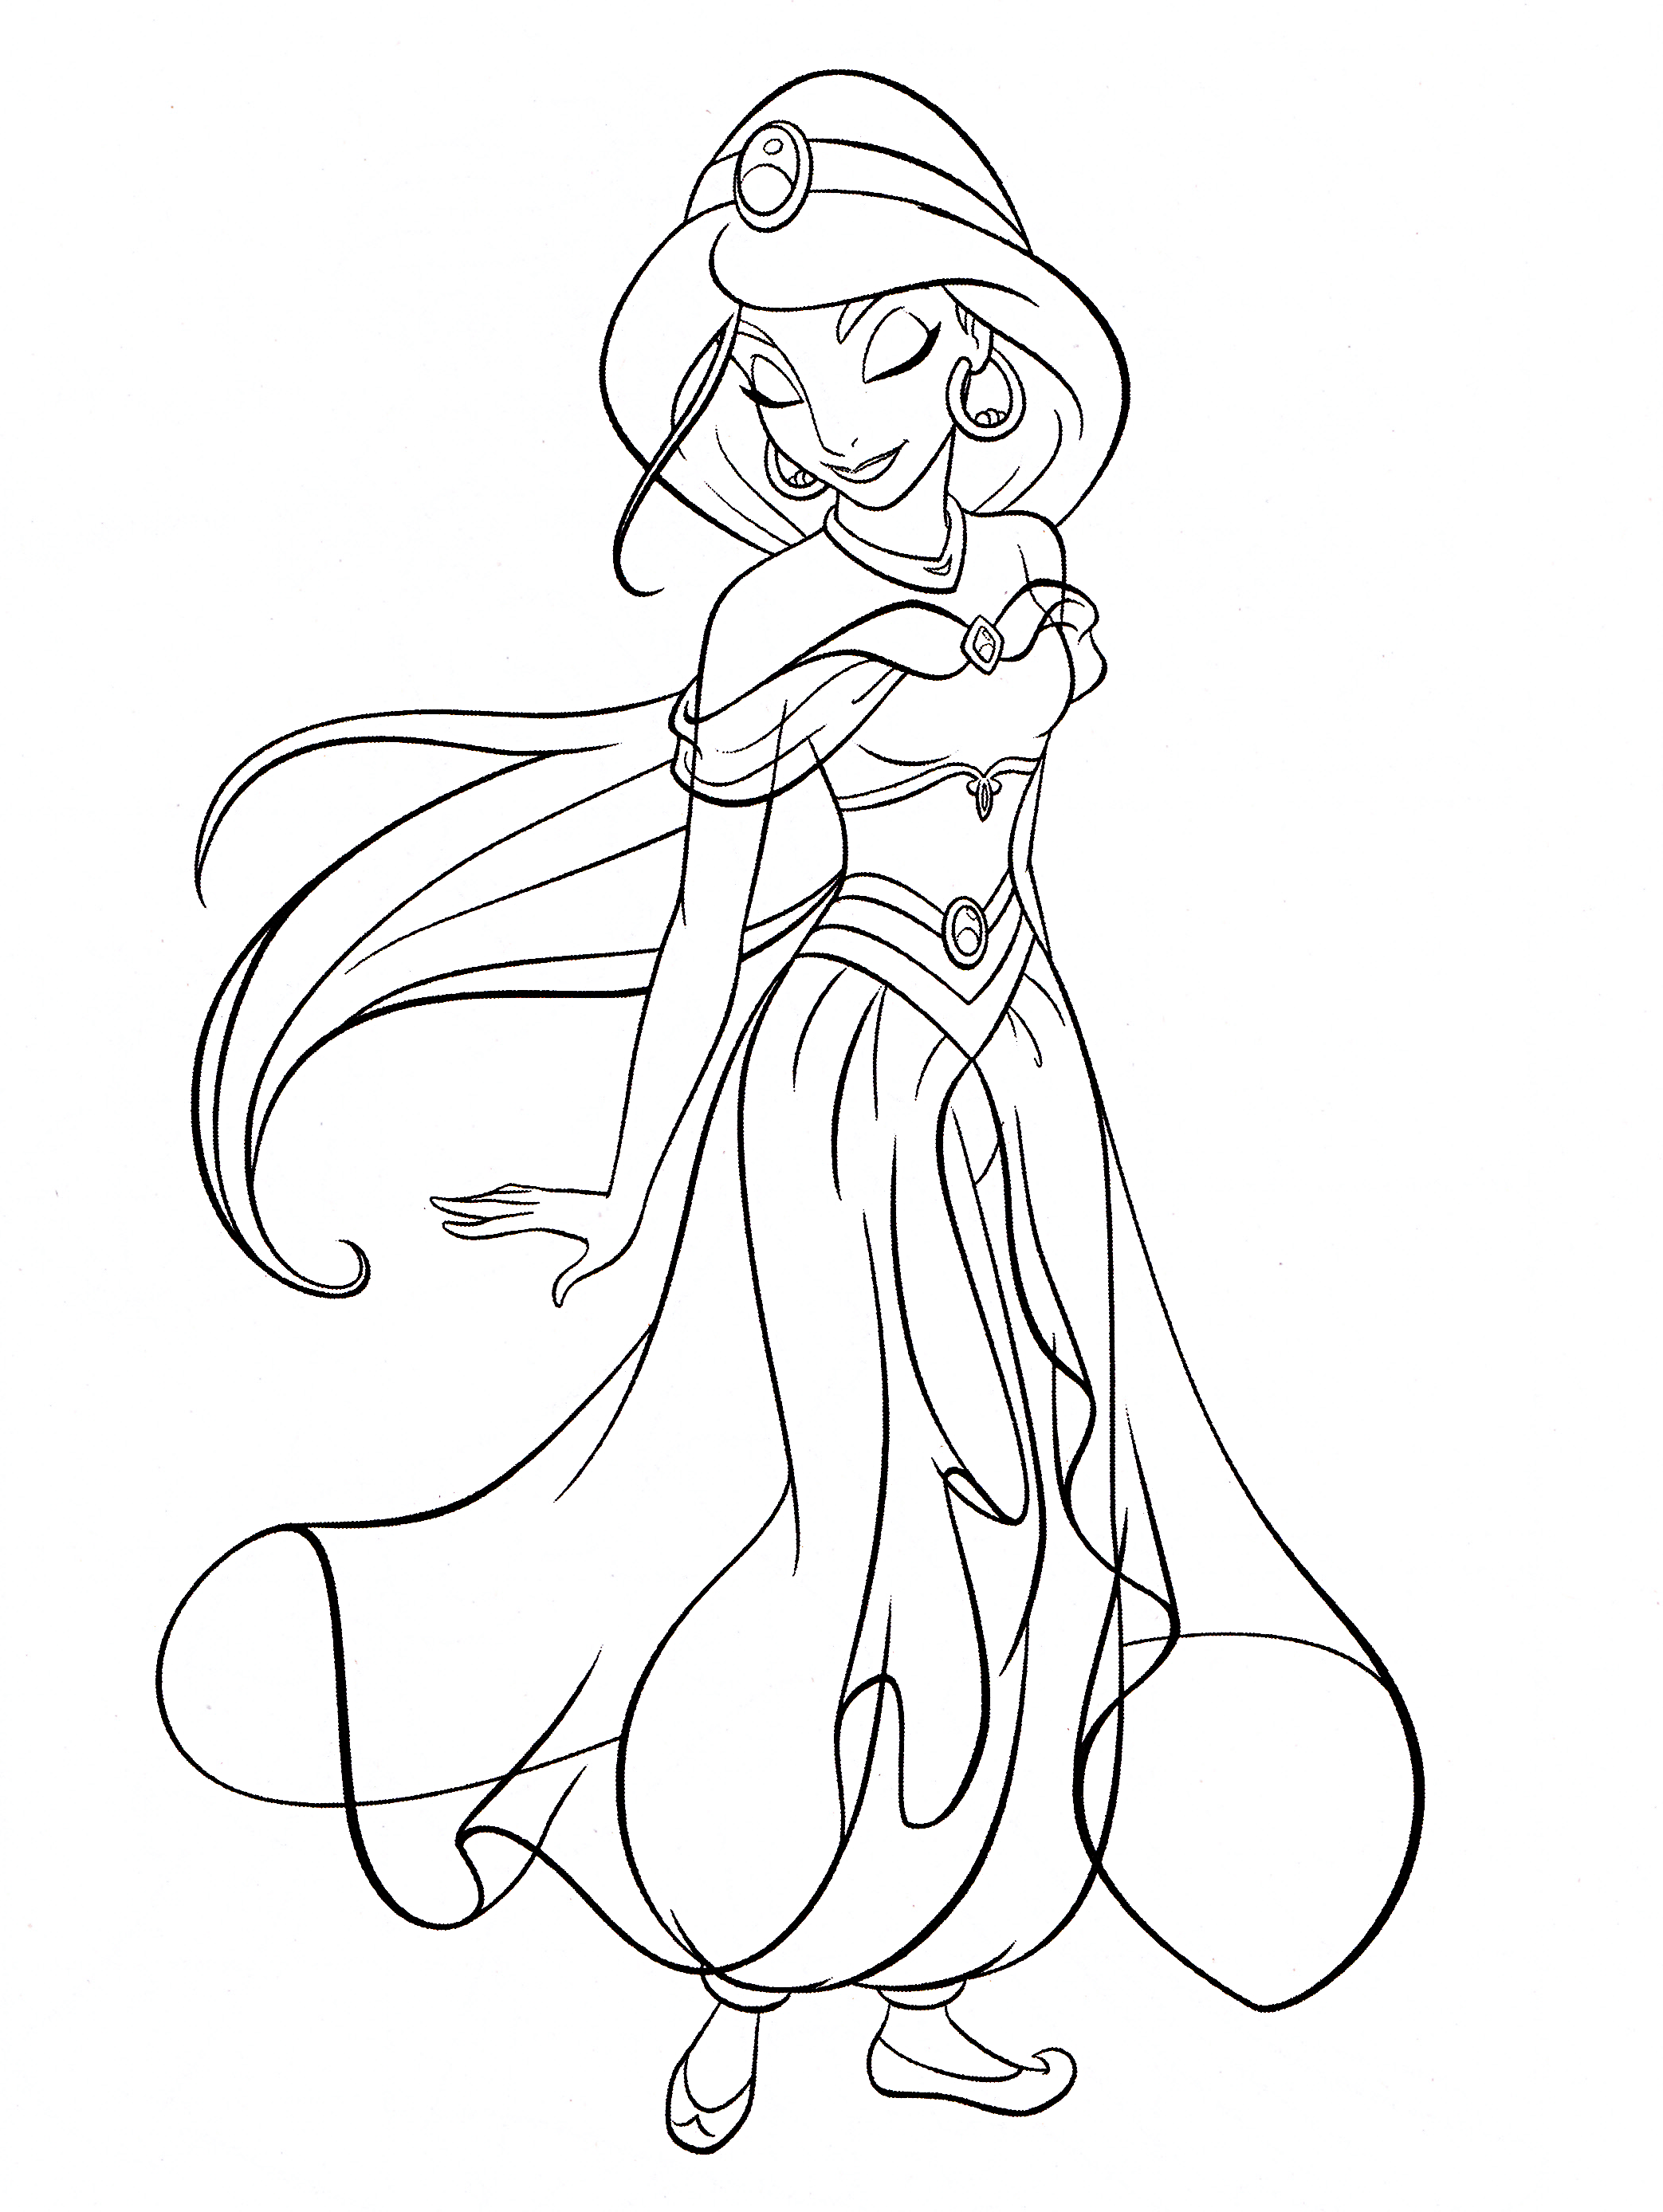 Grab Your New Coloring Pages Jasmine Download Https Gethighit Com New Colorin Disney Princess Coloring Pages Princess Coloring Pages Disney Princess Colors